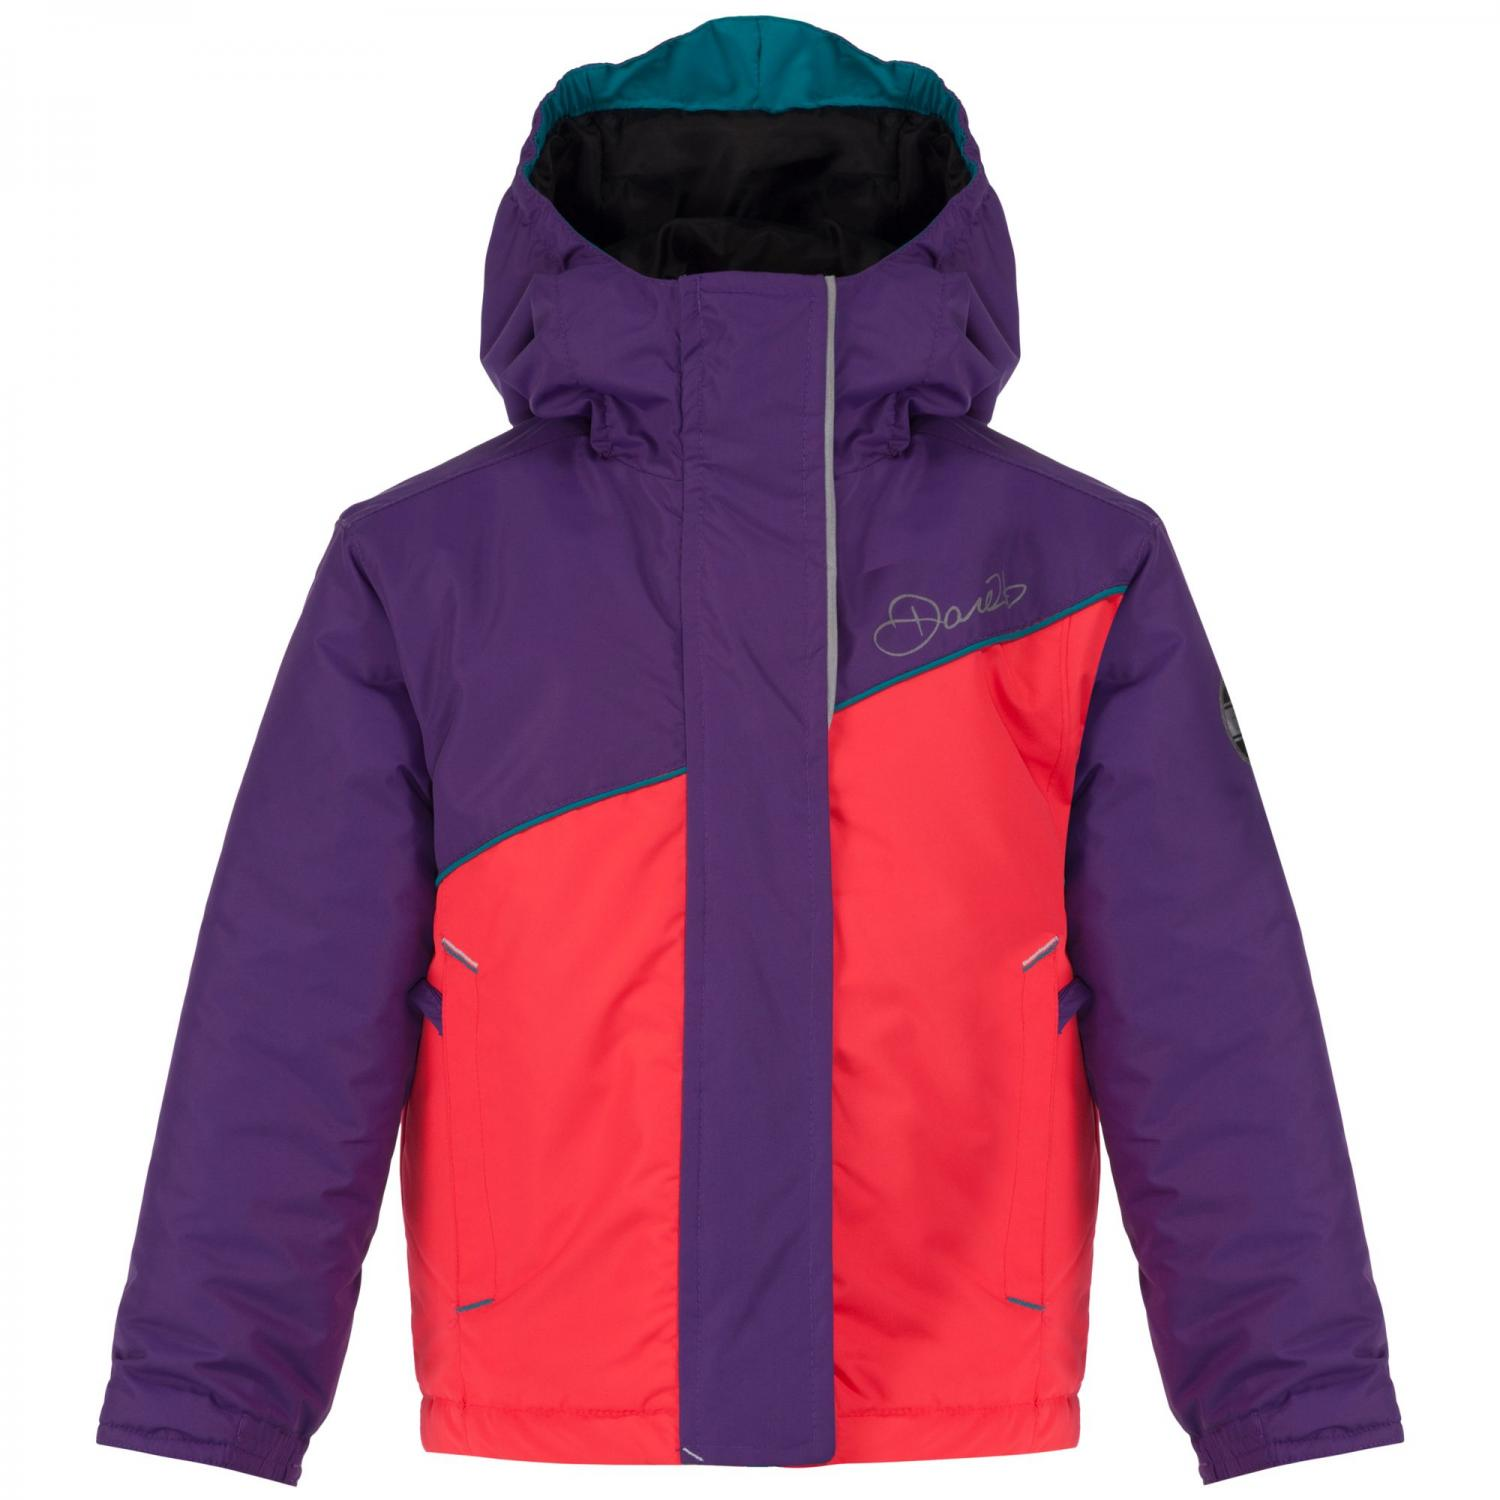 Set About Ski Jacket Royal Purple Pink 0b2d5f2b5